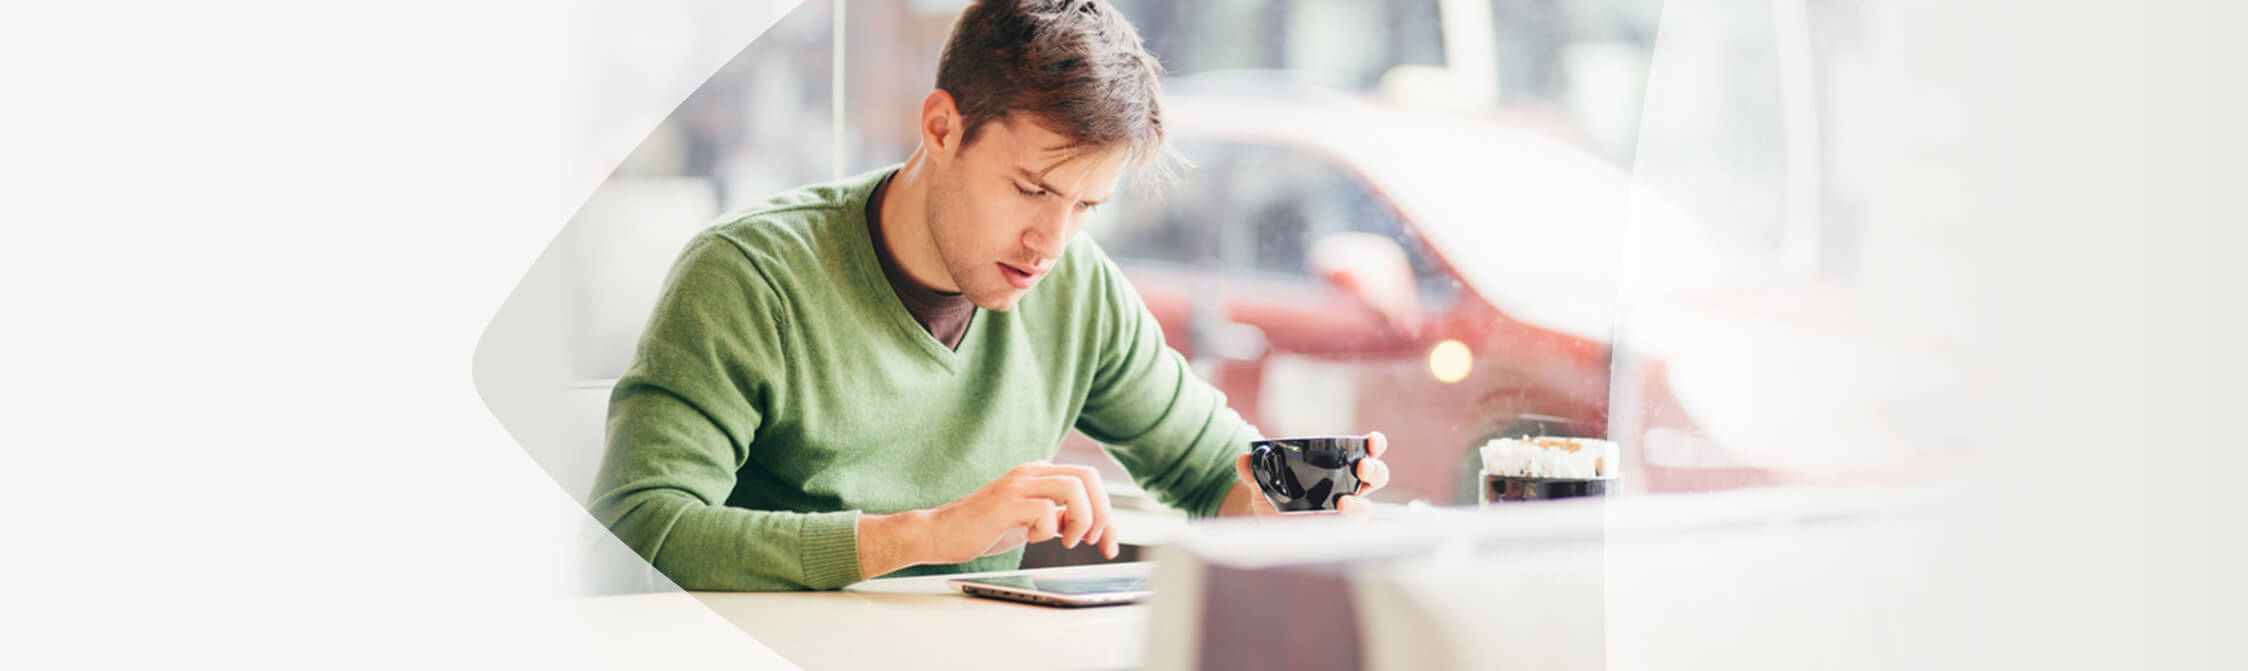 Man having a coffee while reading